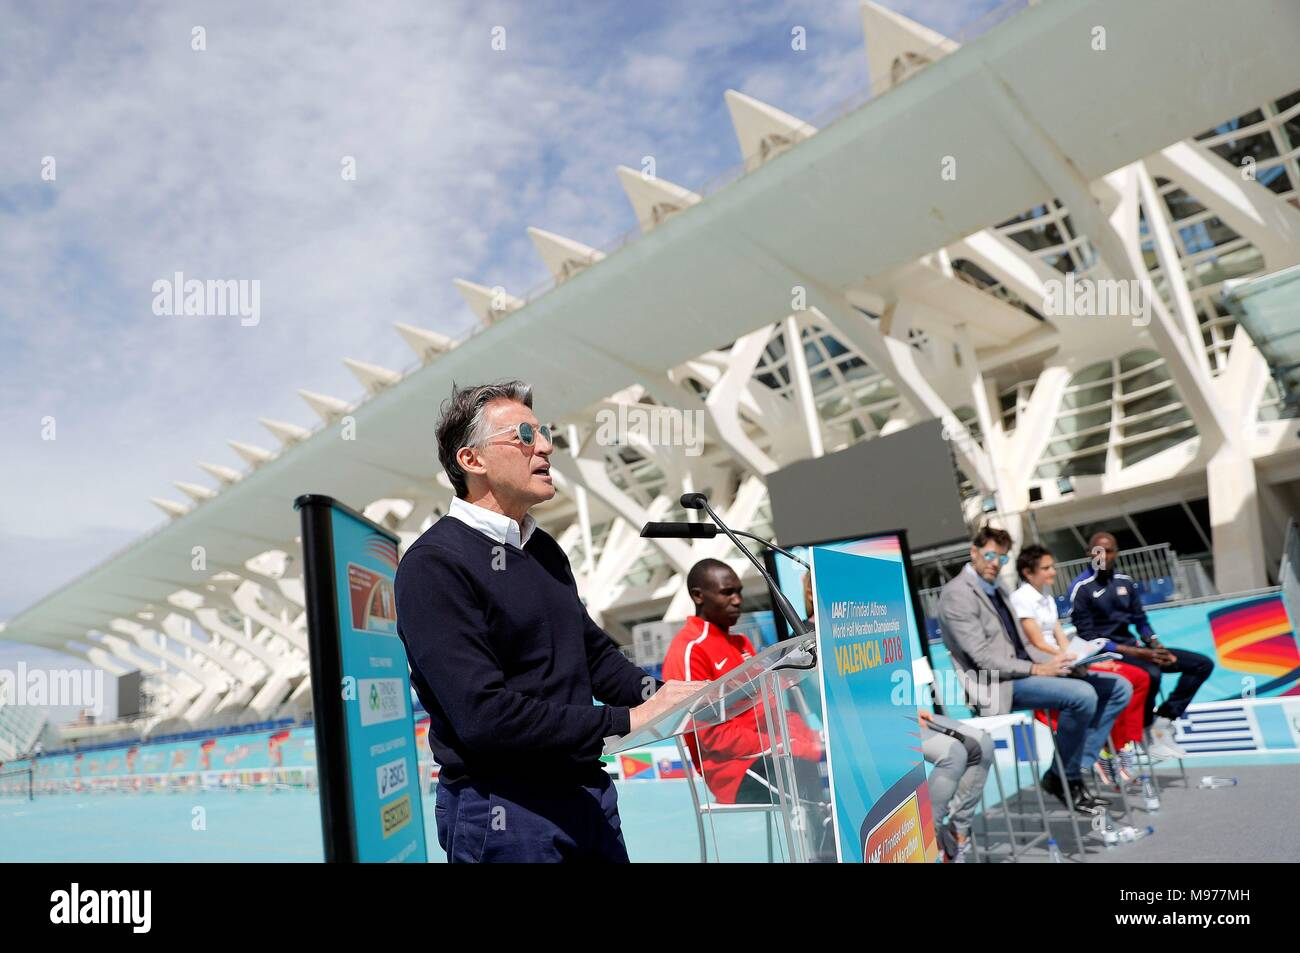 President of the International Association of Athletics Federations (IAAF), Sebastian COE, poses during the presentation of the IAAF World Half Marathon Championships at the Arts and Science City in Valencia, Spain, 23 March 2018. The IAAF World Half Marathon Championships 2018 will be held next 24 March 2018. Up to 315 elite athletes from 87 countries will be competing amongst a total of 14,577 runners.EFE/ Manuel Bruque - Stock Image